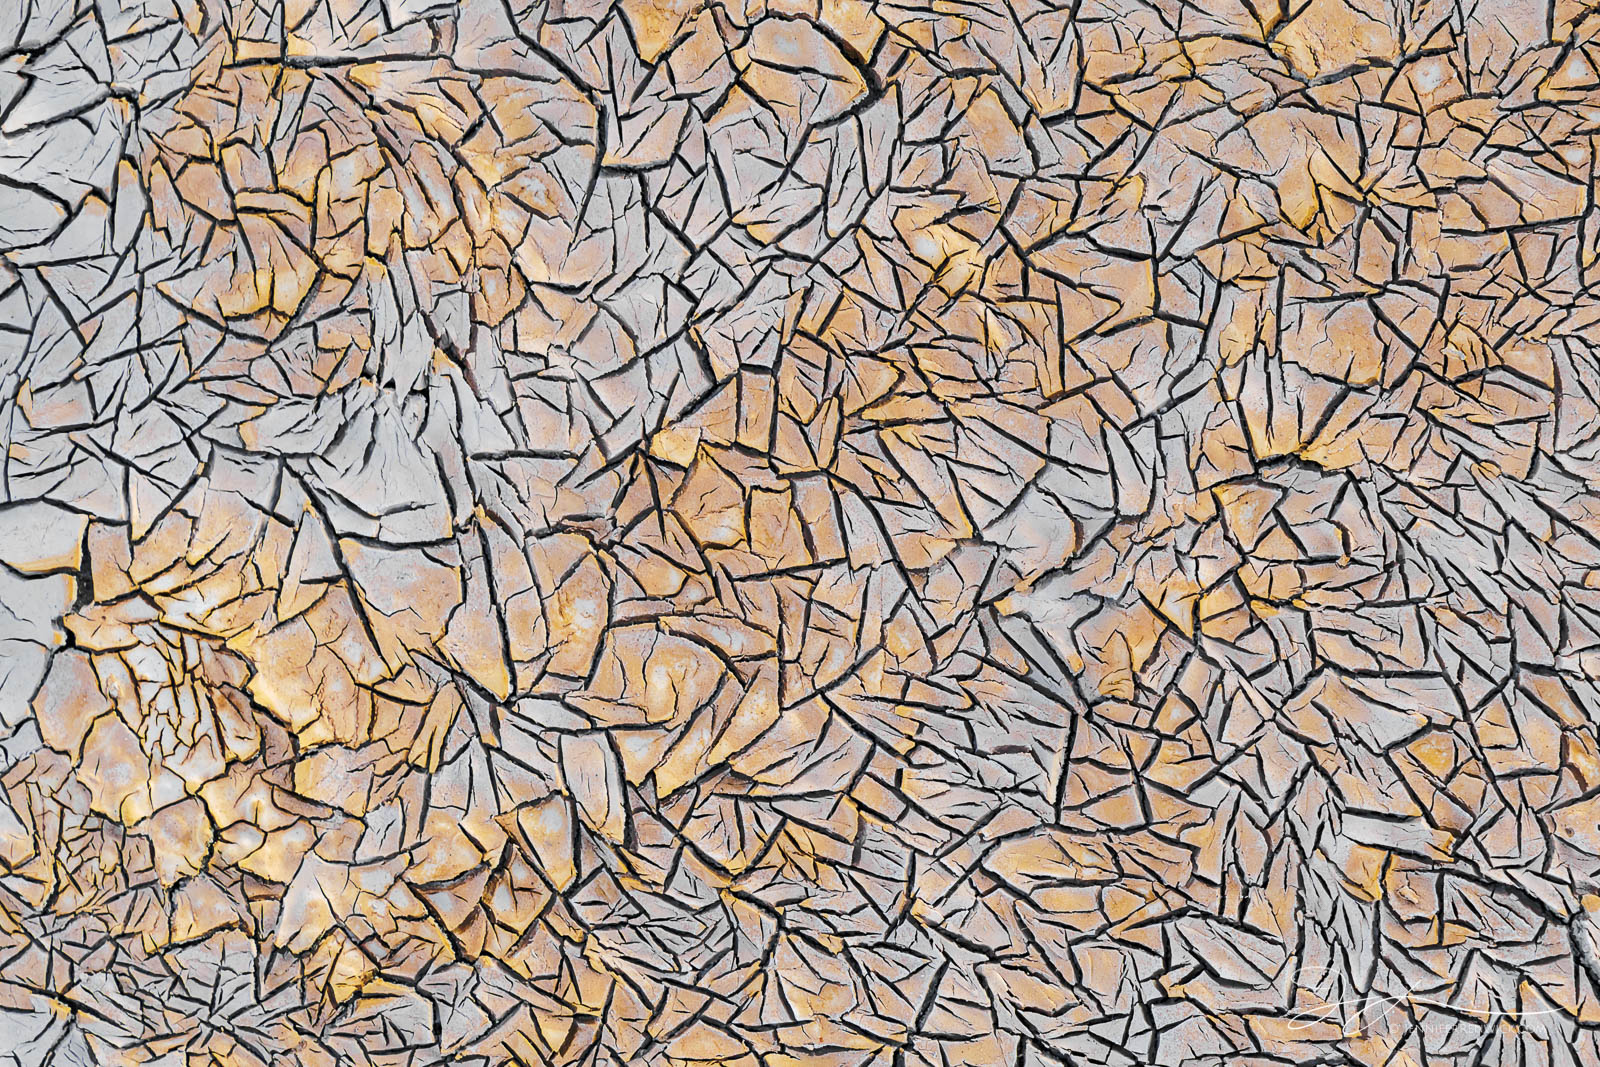 Small cracks in the mud on the desert floor create a geometric pattern.